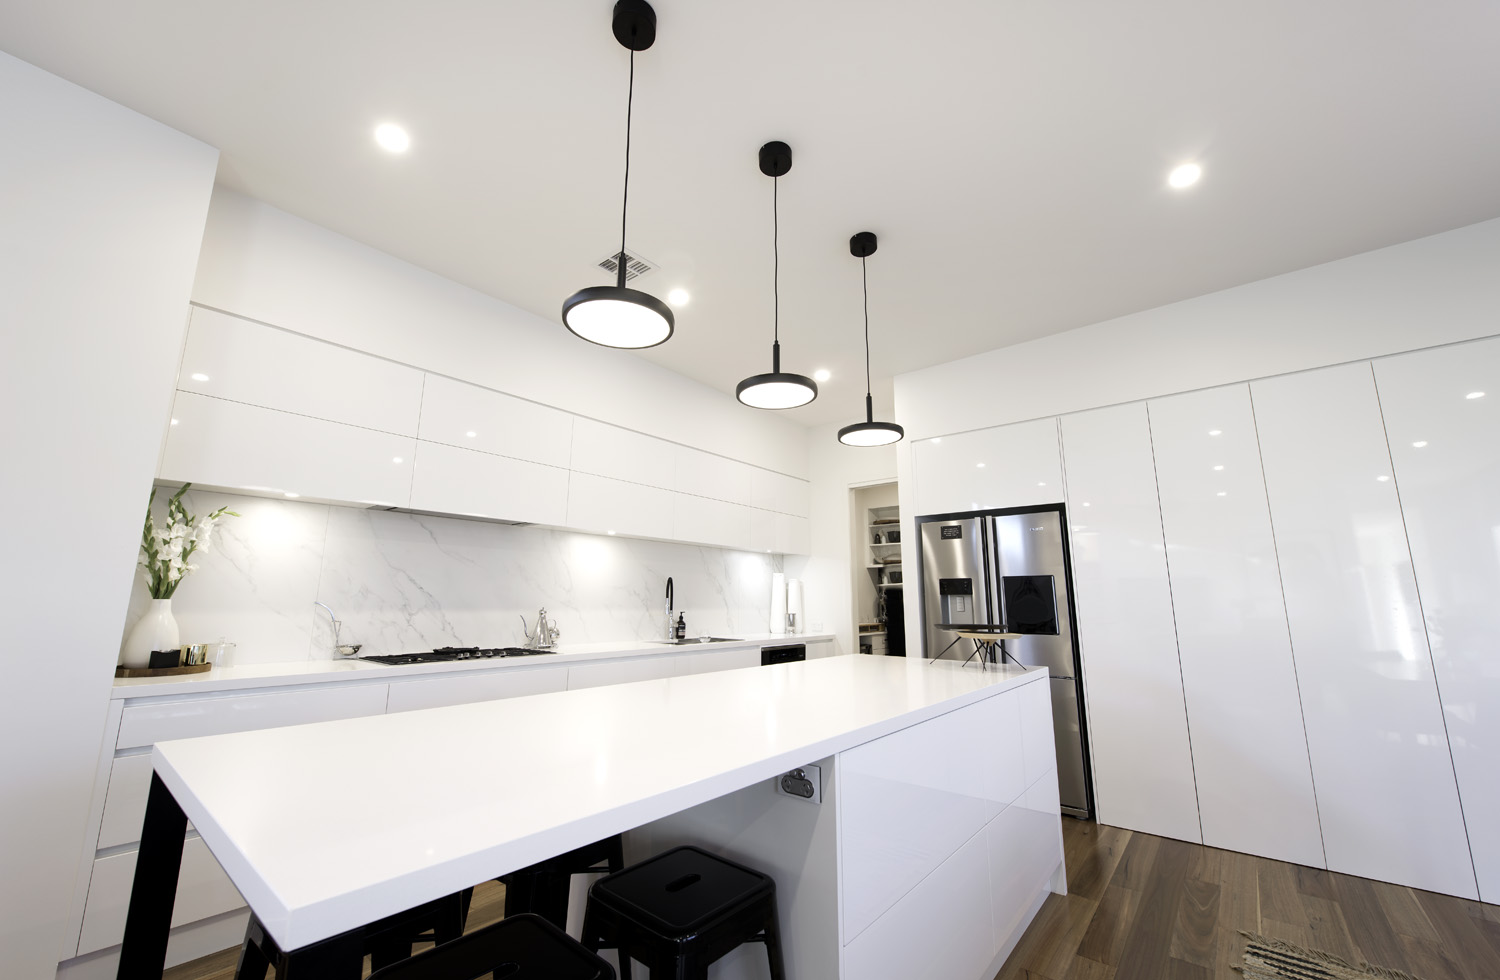 Kitchen considerations worth getting right.